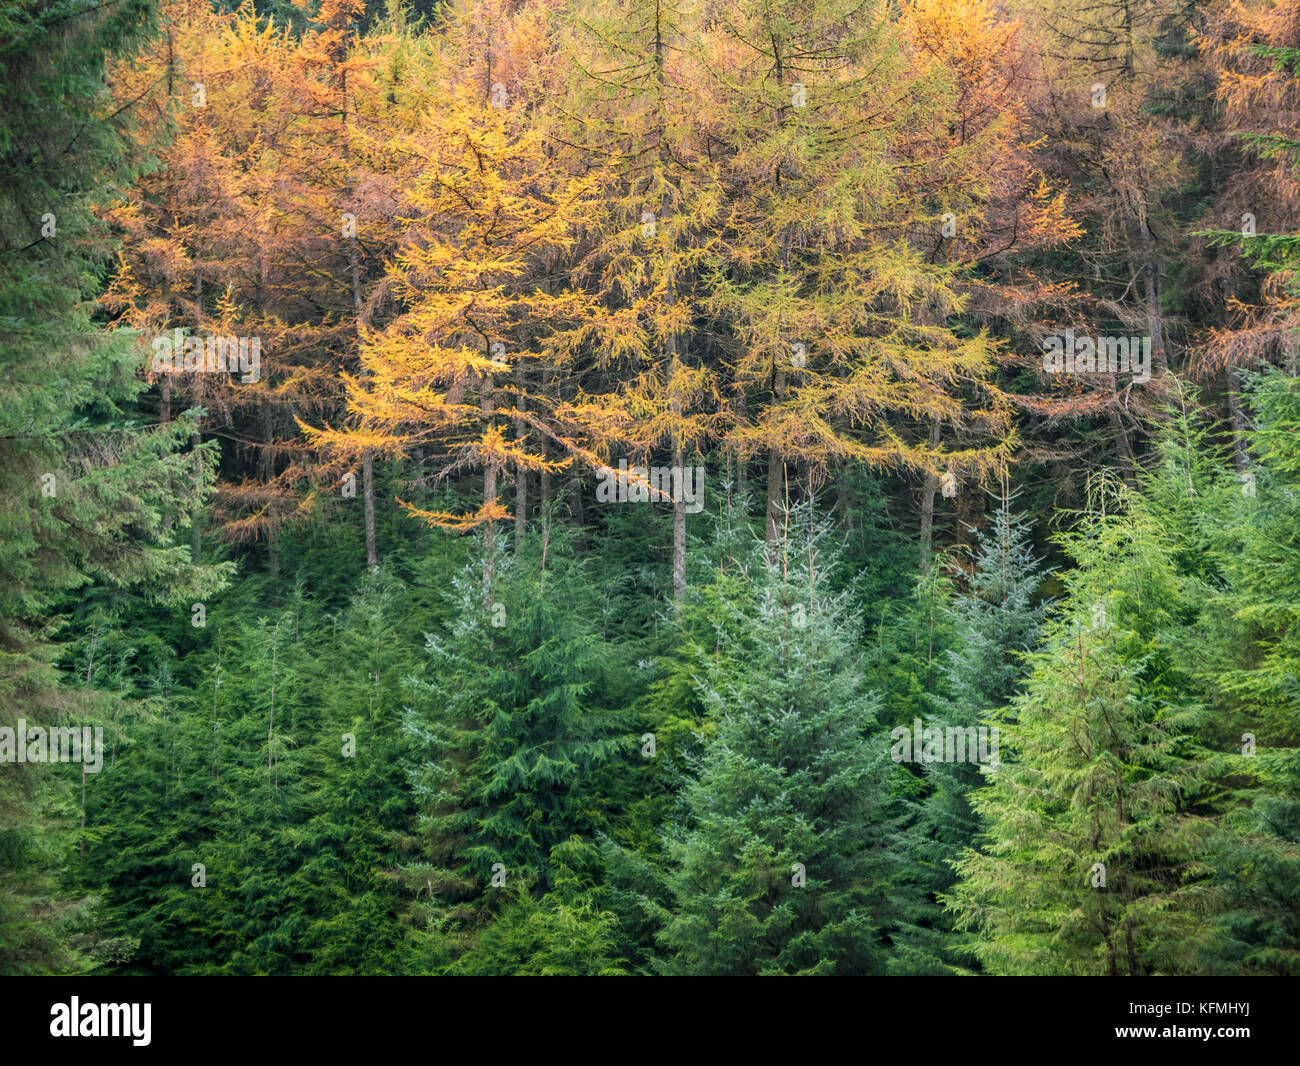 Landscape of Wicklow Mountains in autunm colors - Stock Image